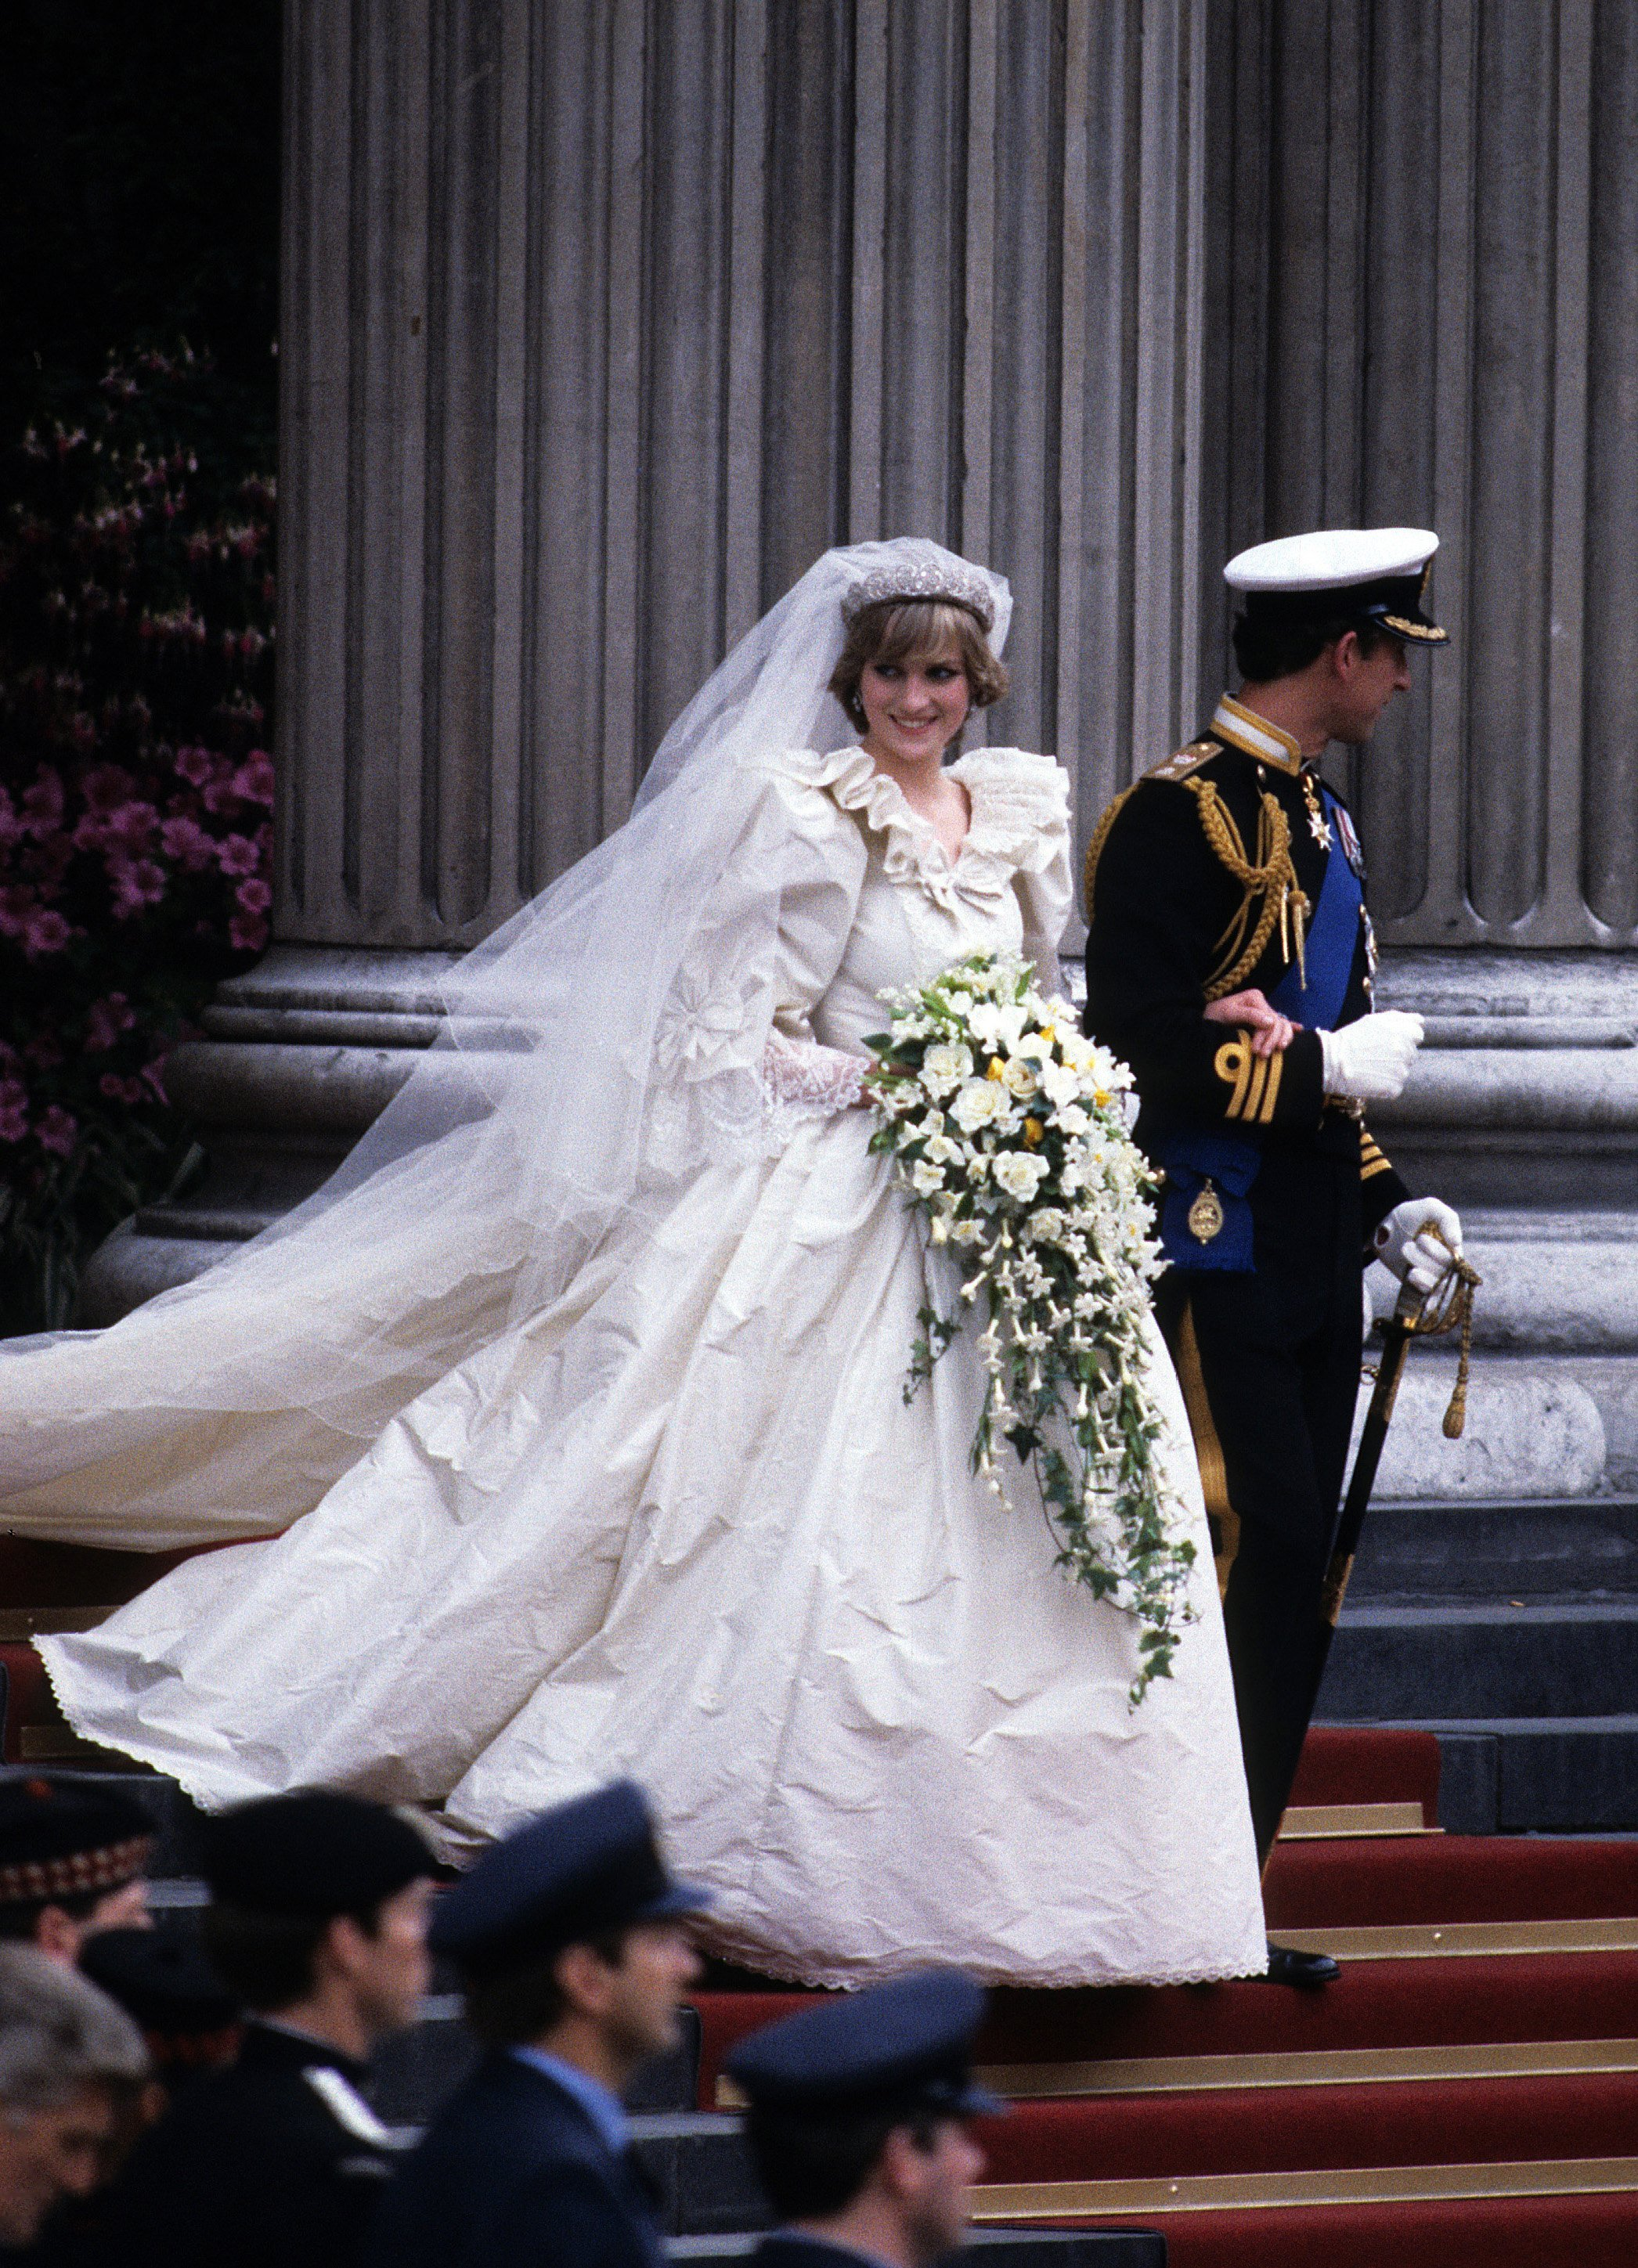 Prince Charles and Diana eave St. Paul's Cathedral following their wedding on July 29, 1981 in London, England. | Source: Getty Images